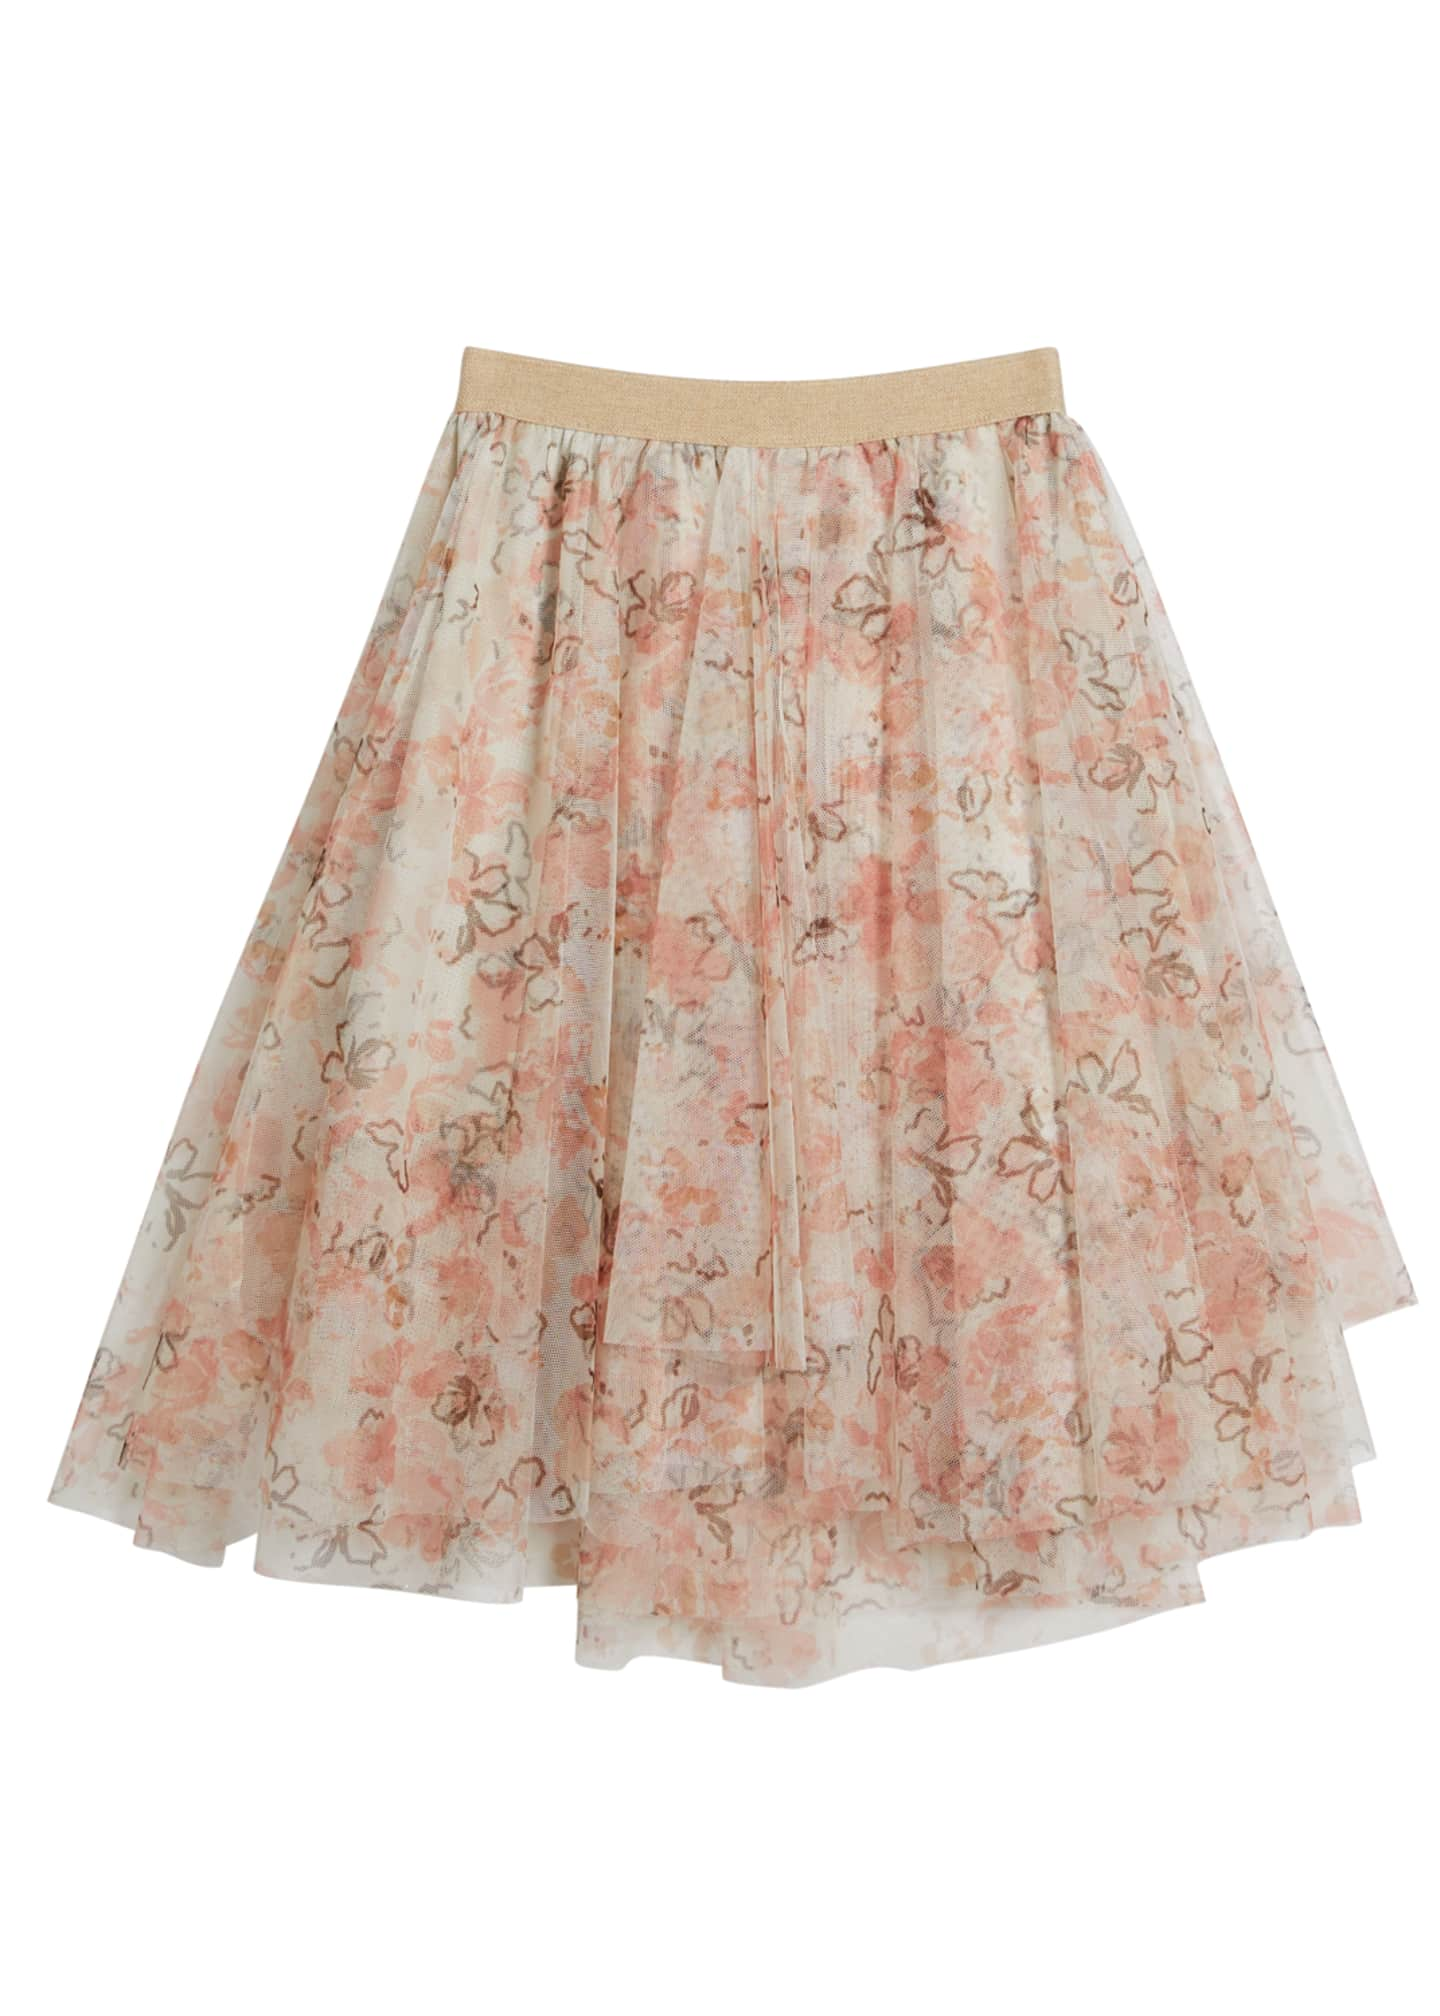 Image 1 of 1: Girl's Floral Printed Tulle Skirt, Size 8-10